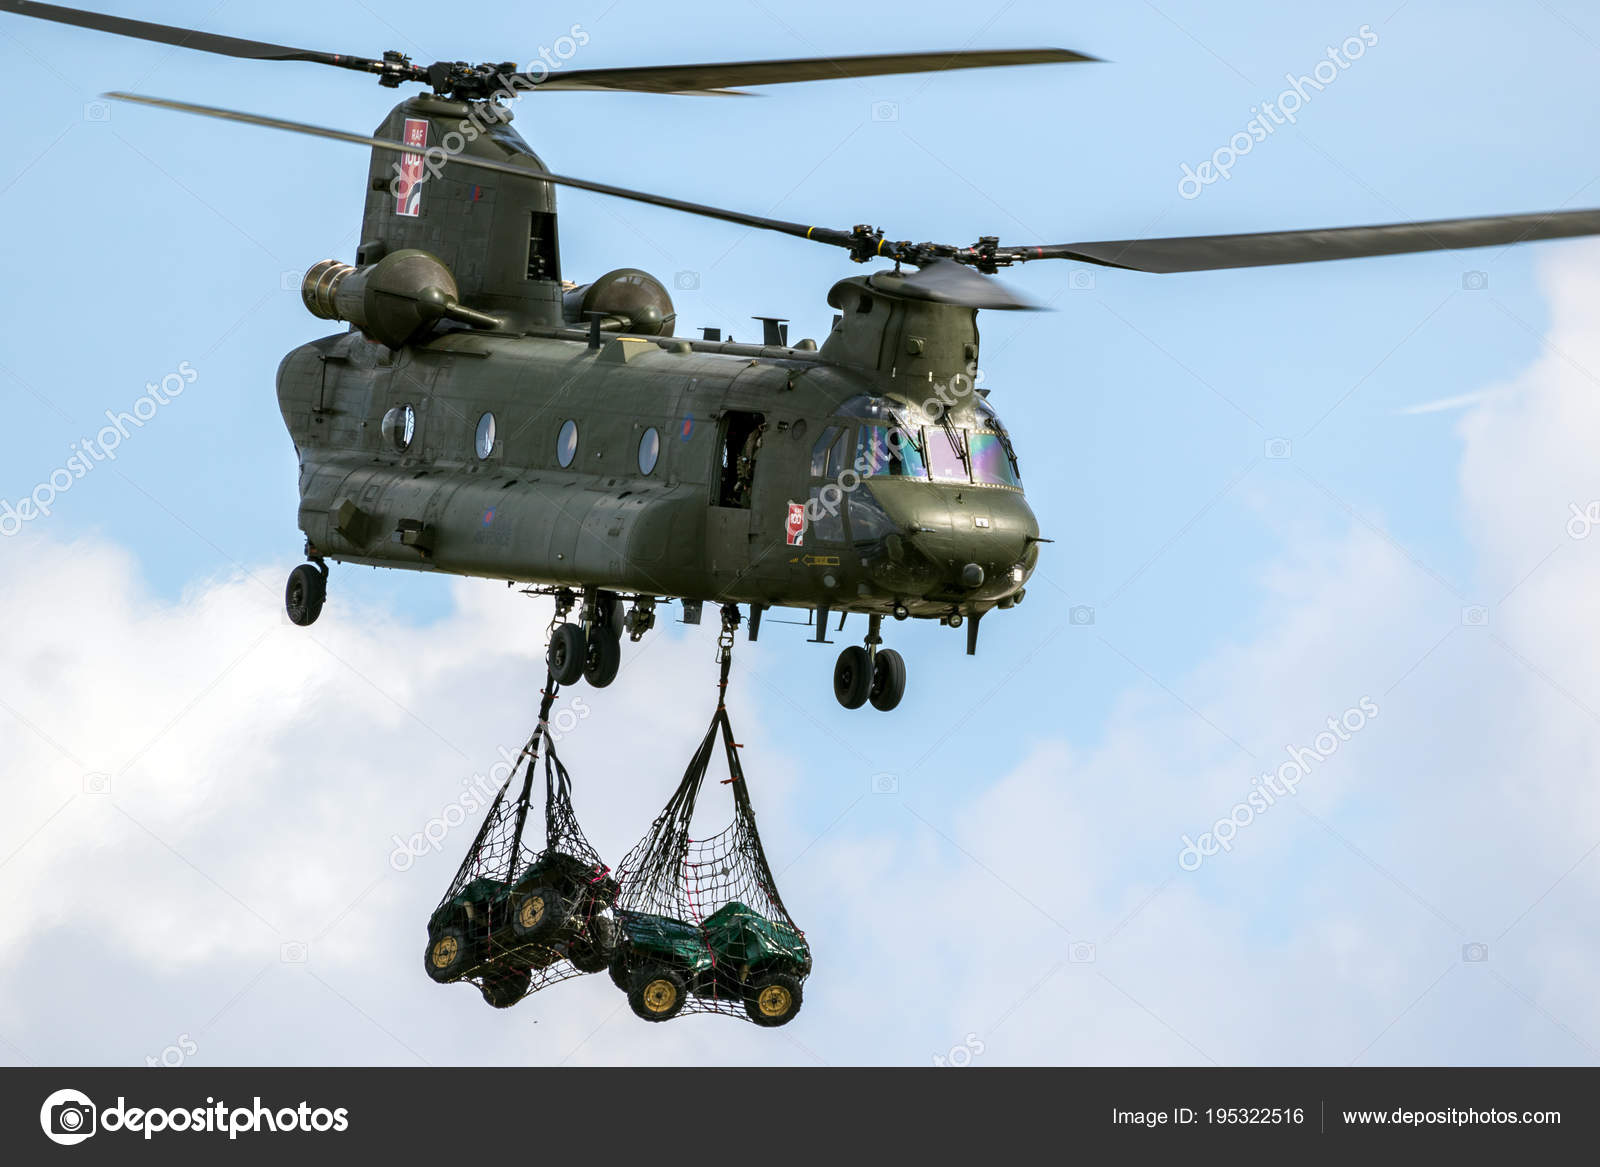 Elicottero Ch : Royal air force ch chinook elicottero u foto editoriale stock